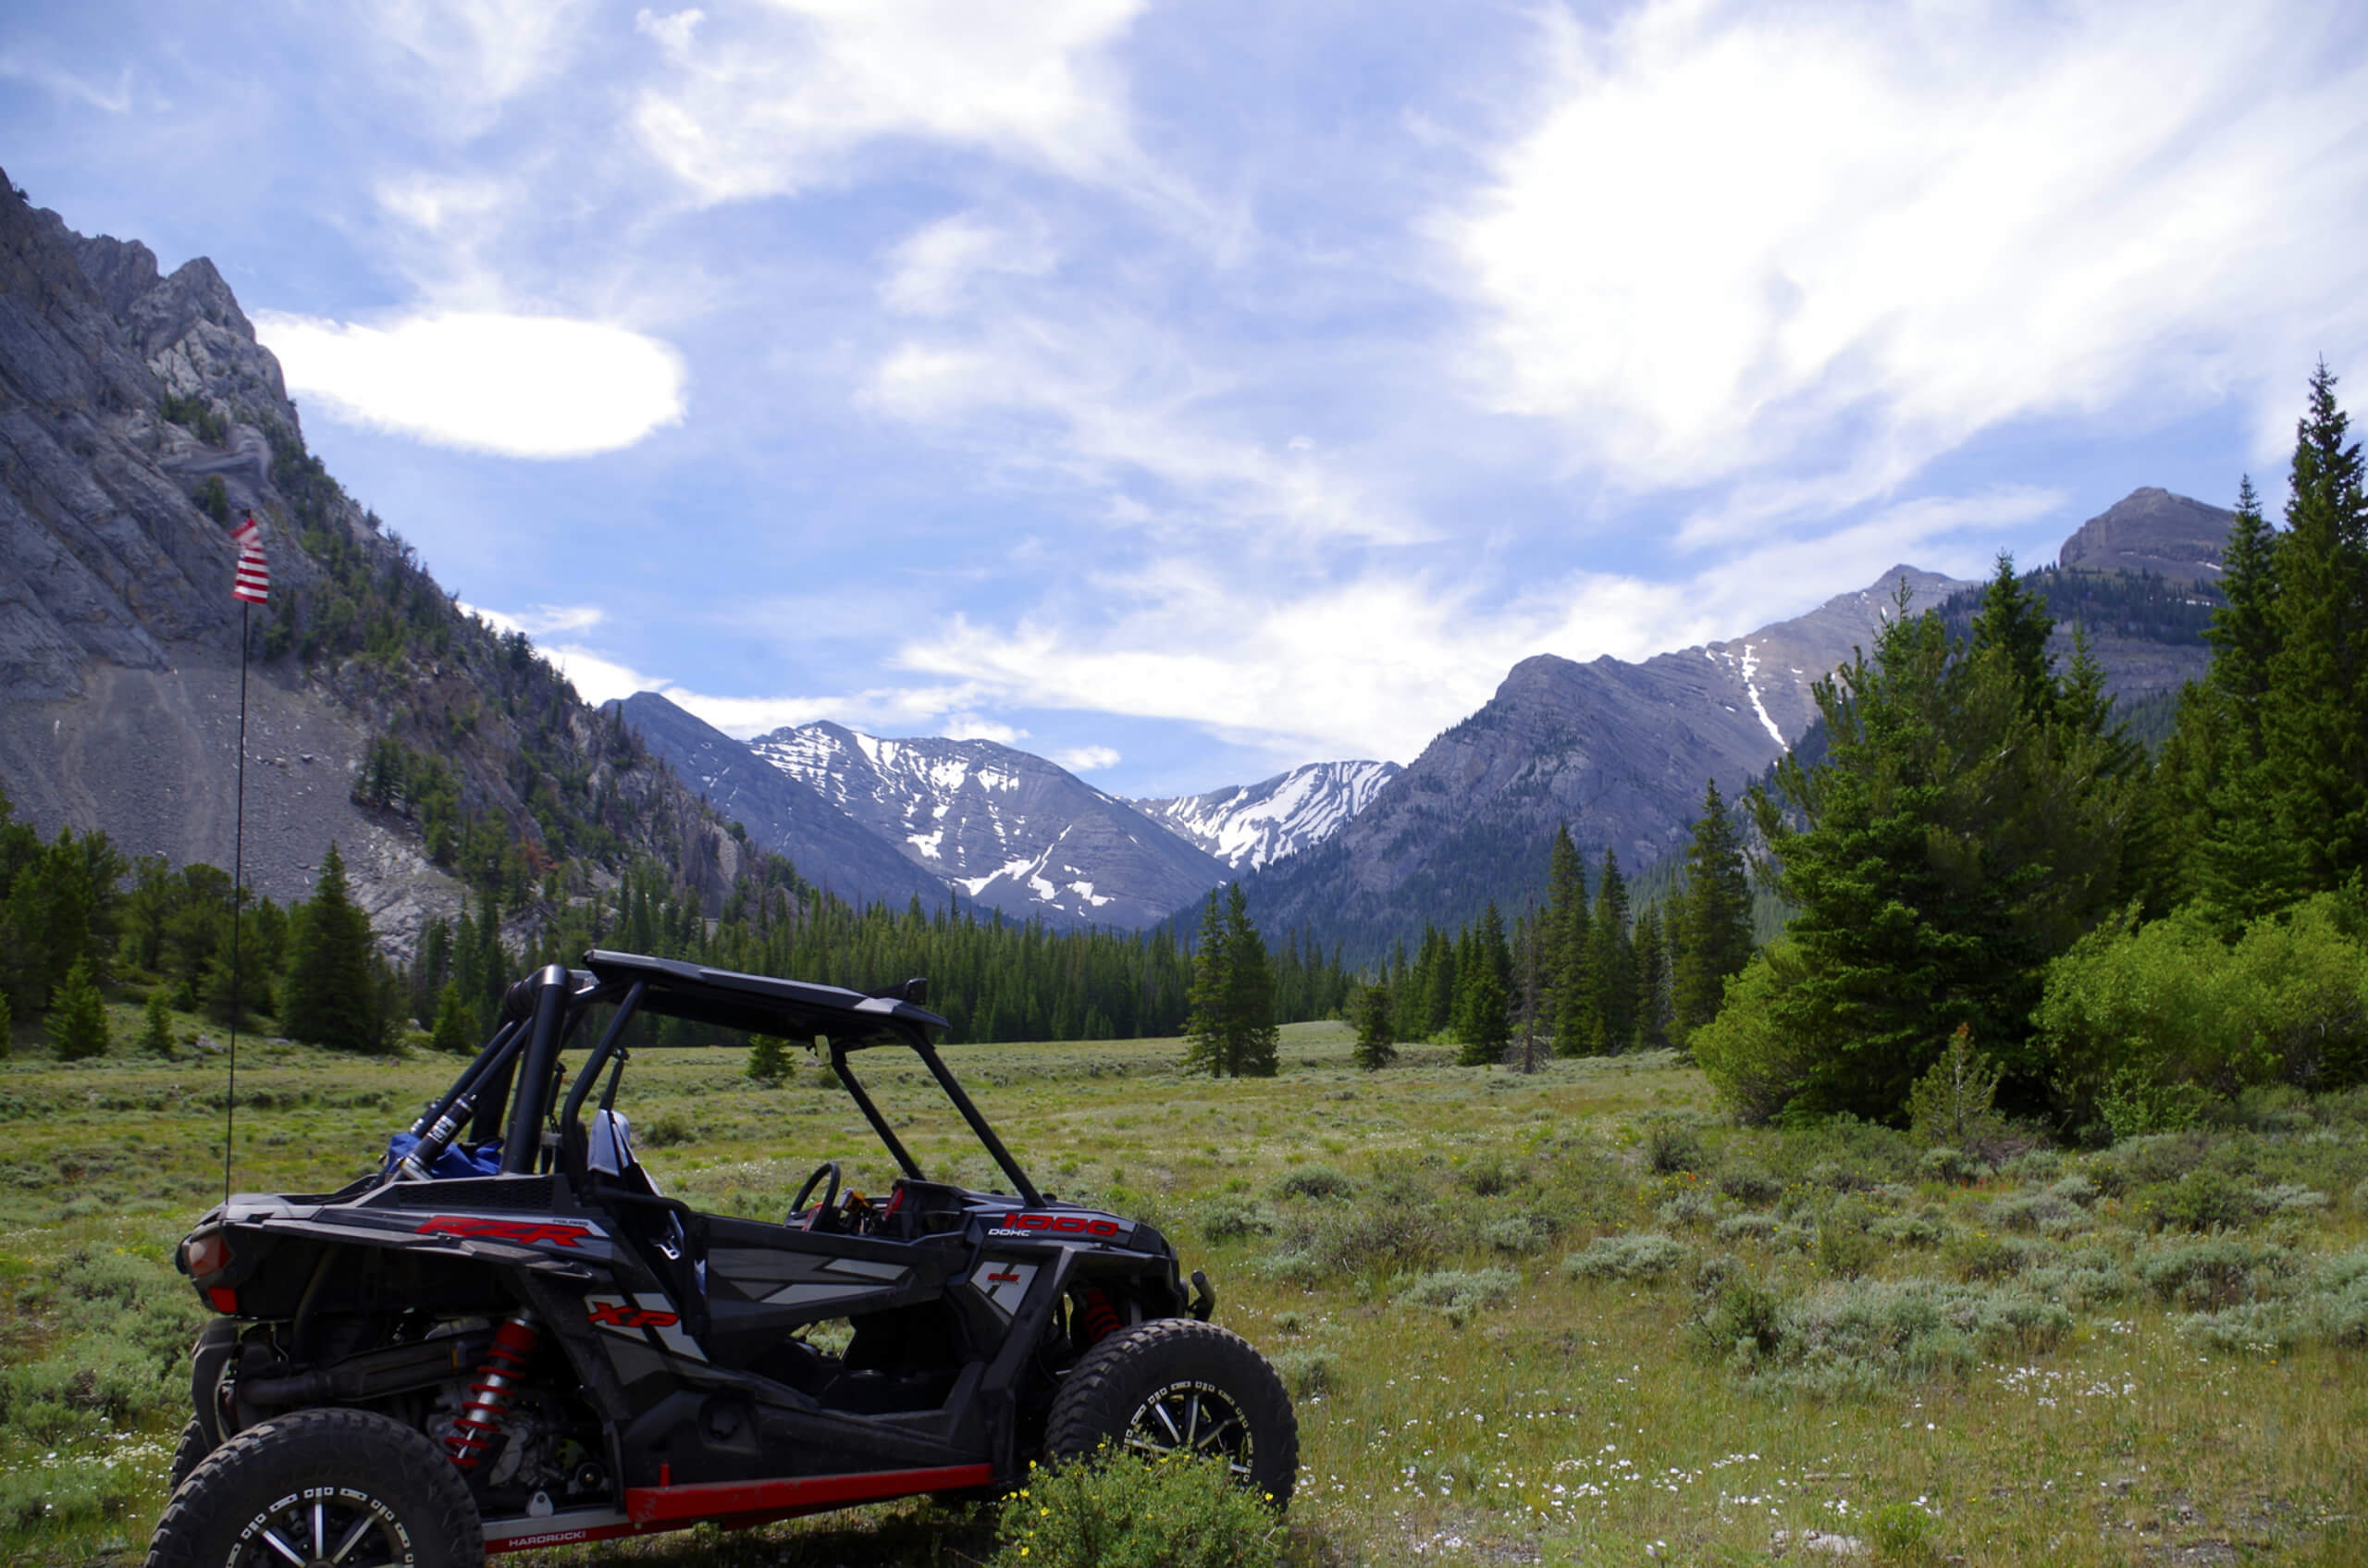 Go West! Great SXS & ATV Riding Opportunities Abound   Visit